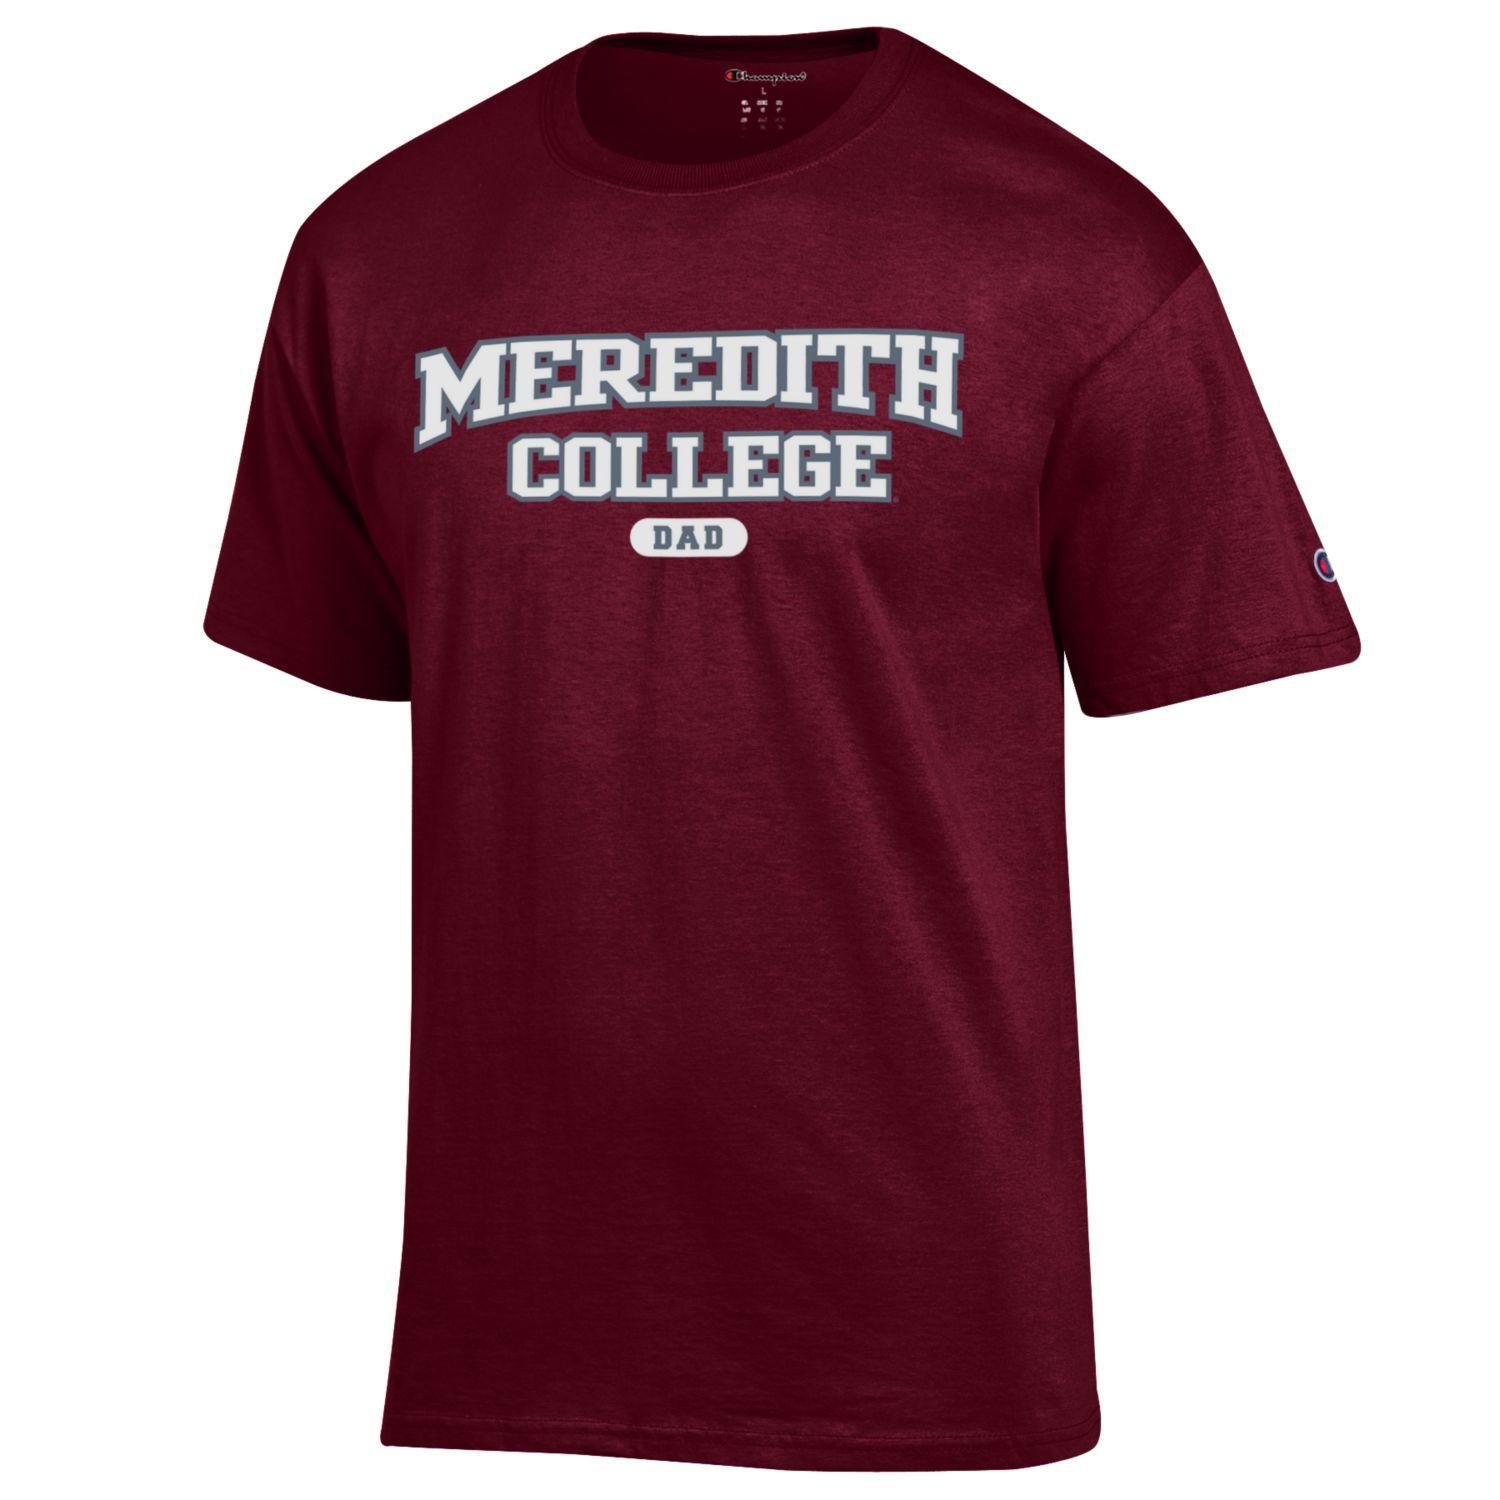 Image for the Meredith College Dad T-Shirt Champion product